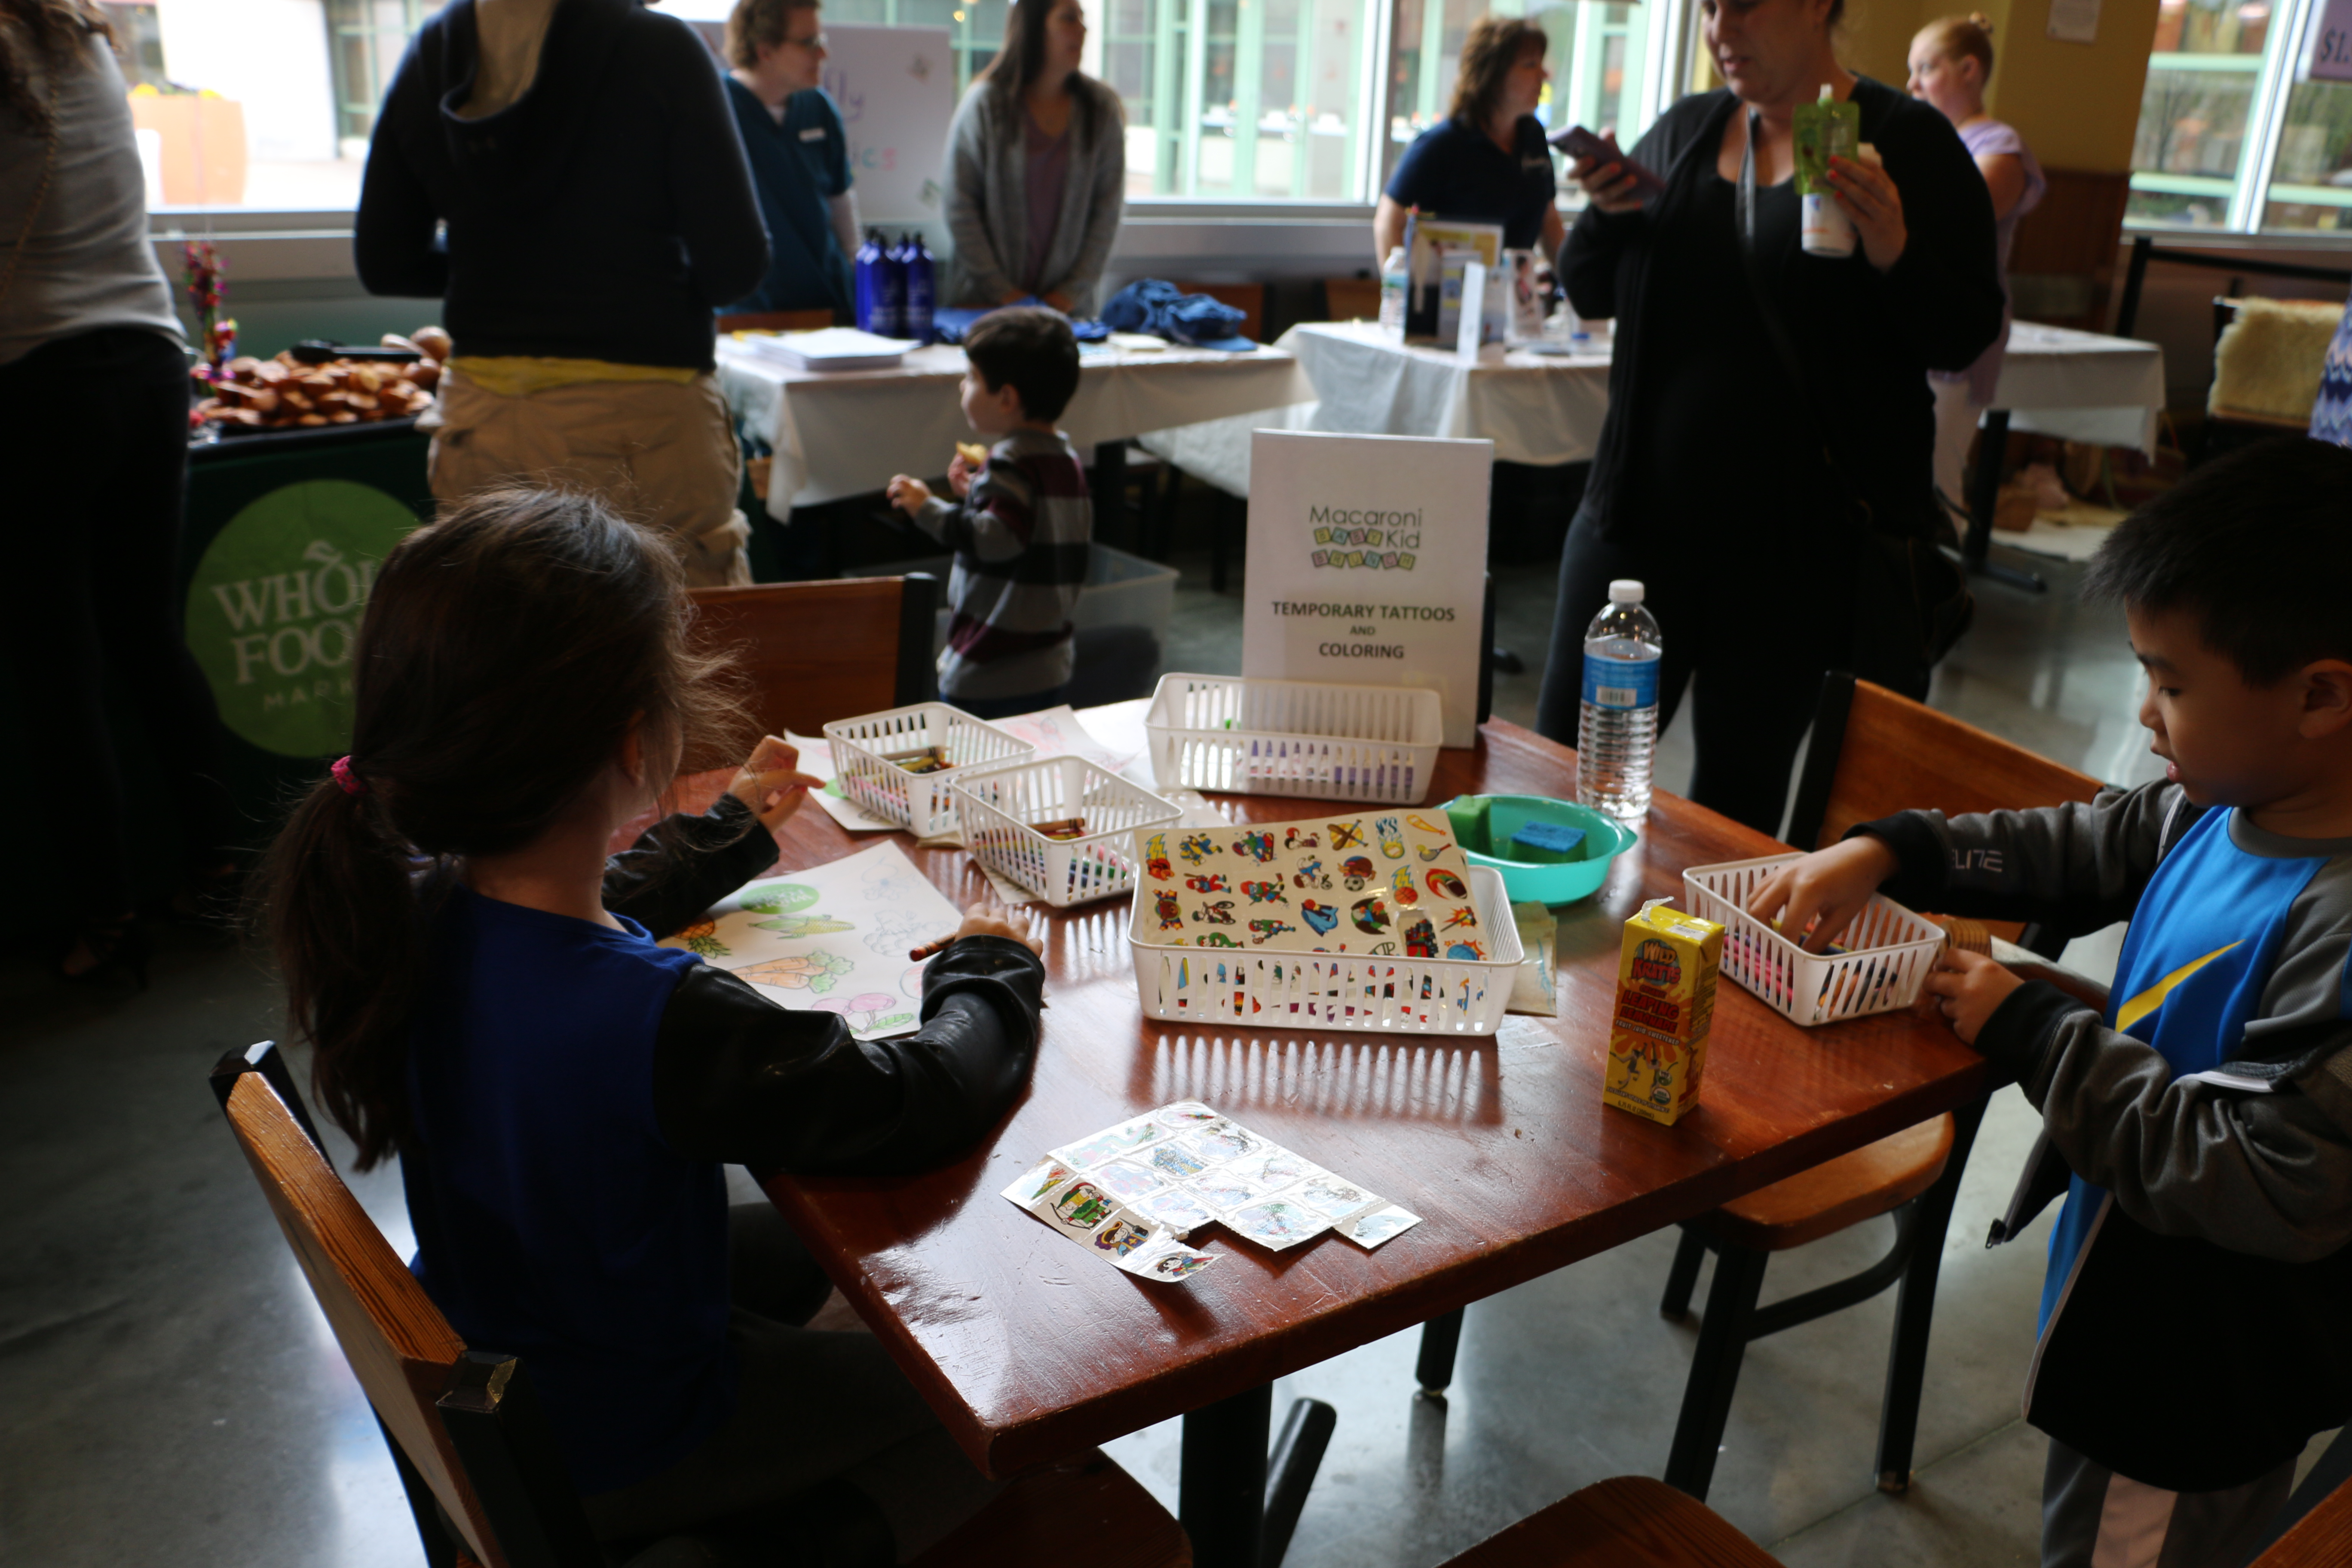 Kids Kept Busy With A Macaroni Kid Activity Table Of Coloring Sheets And Temporary Tattoos